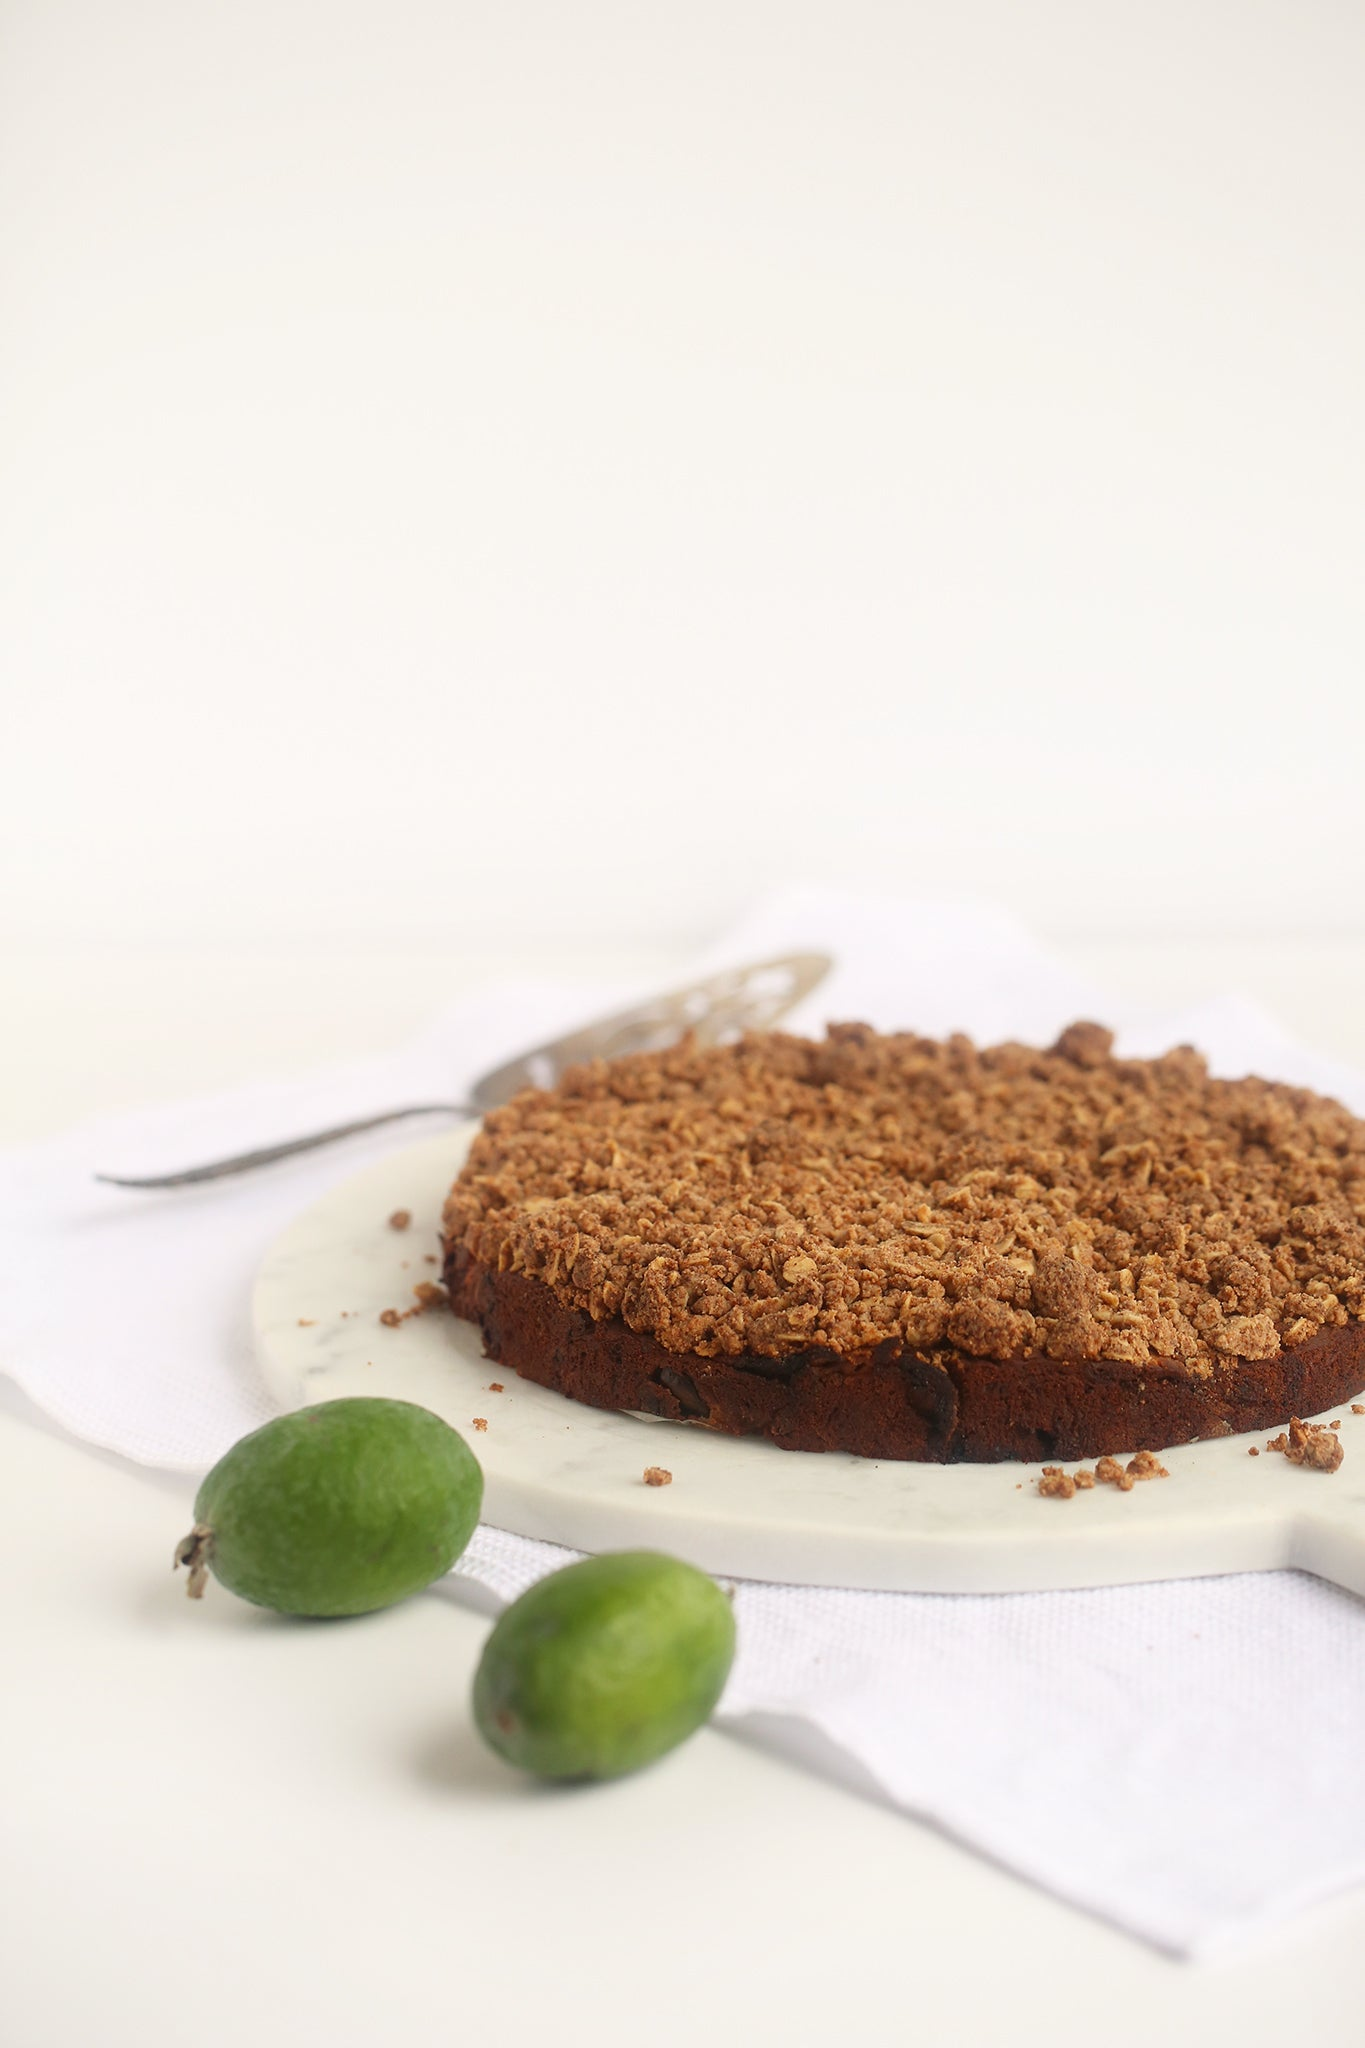 FEIJOA CRUMBLE CAKE the absolute best way to use up all your excess feijoas! #vegan #glutenfree #dairyfree #eggfree #lowsugar #healthy #recipe #begoodorganics